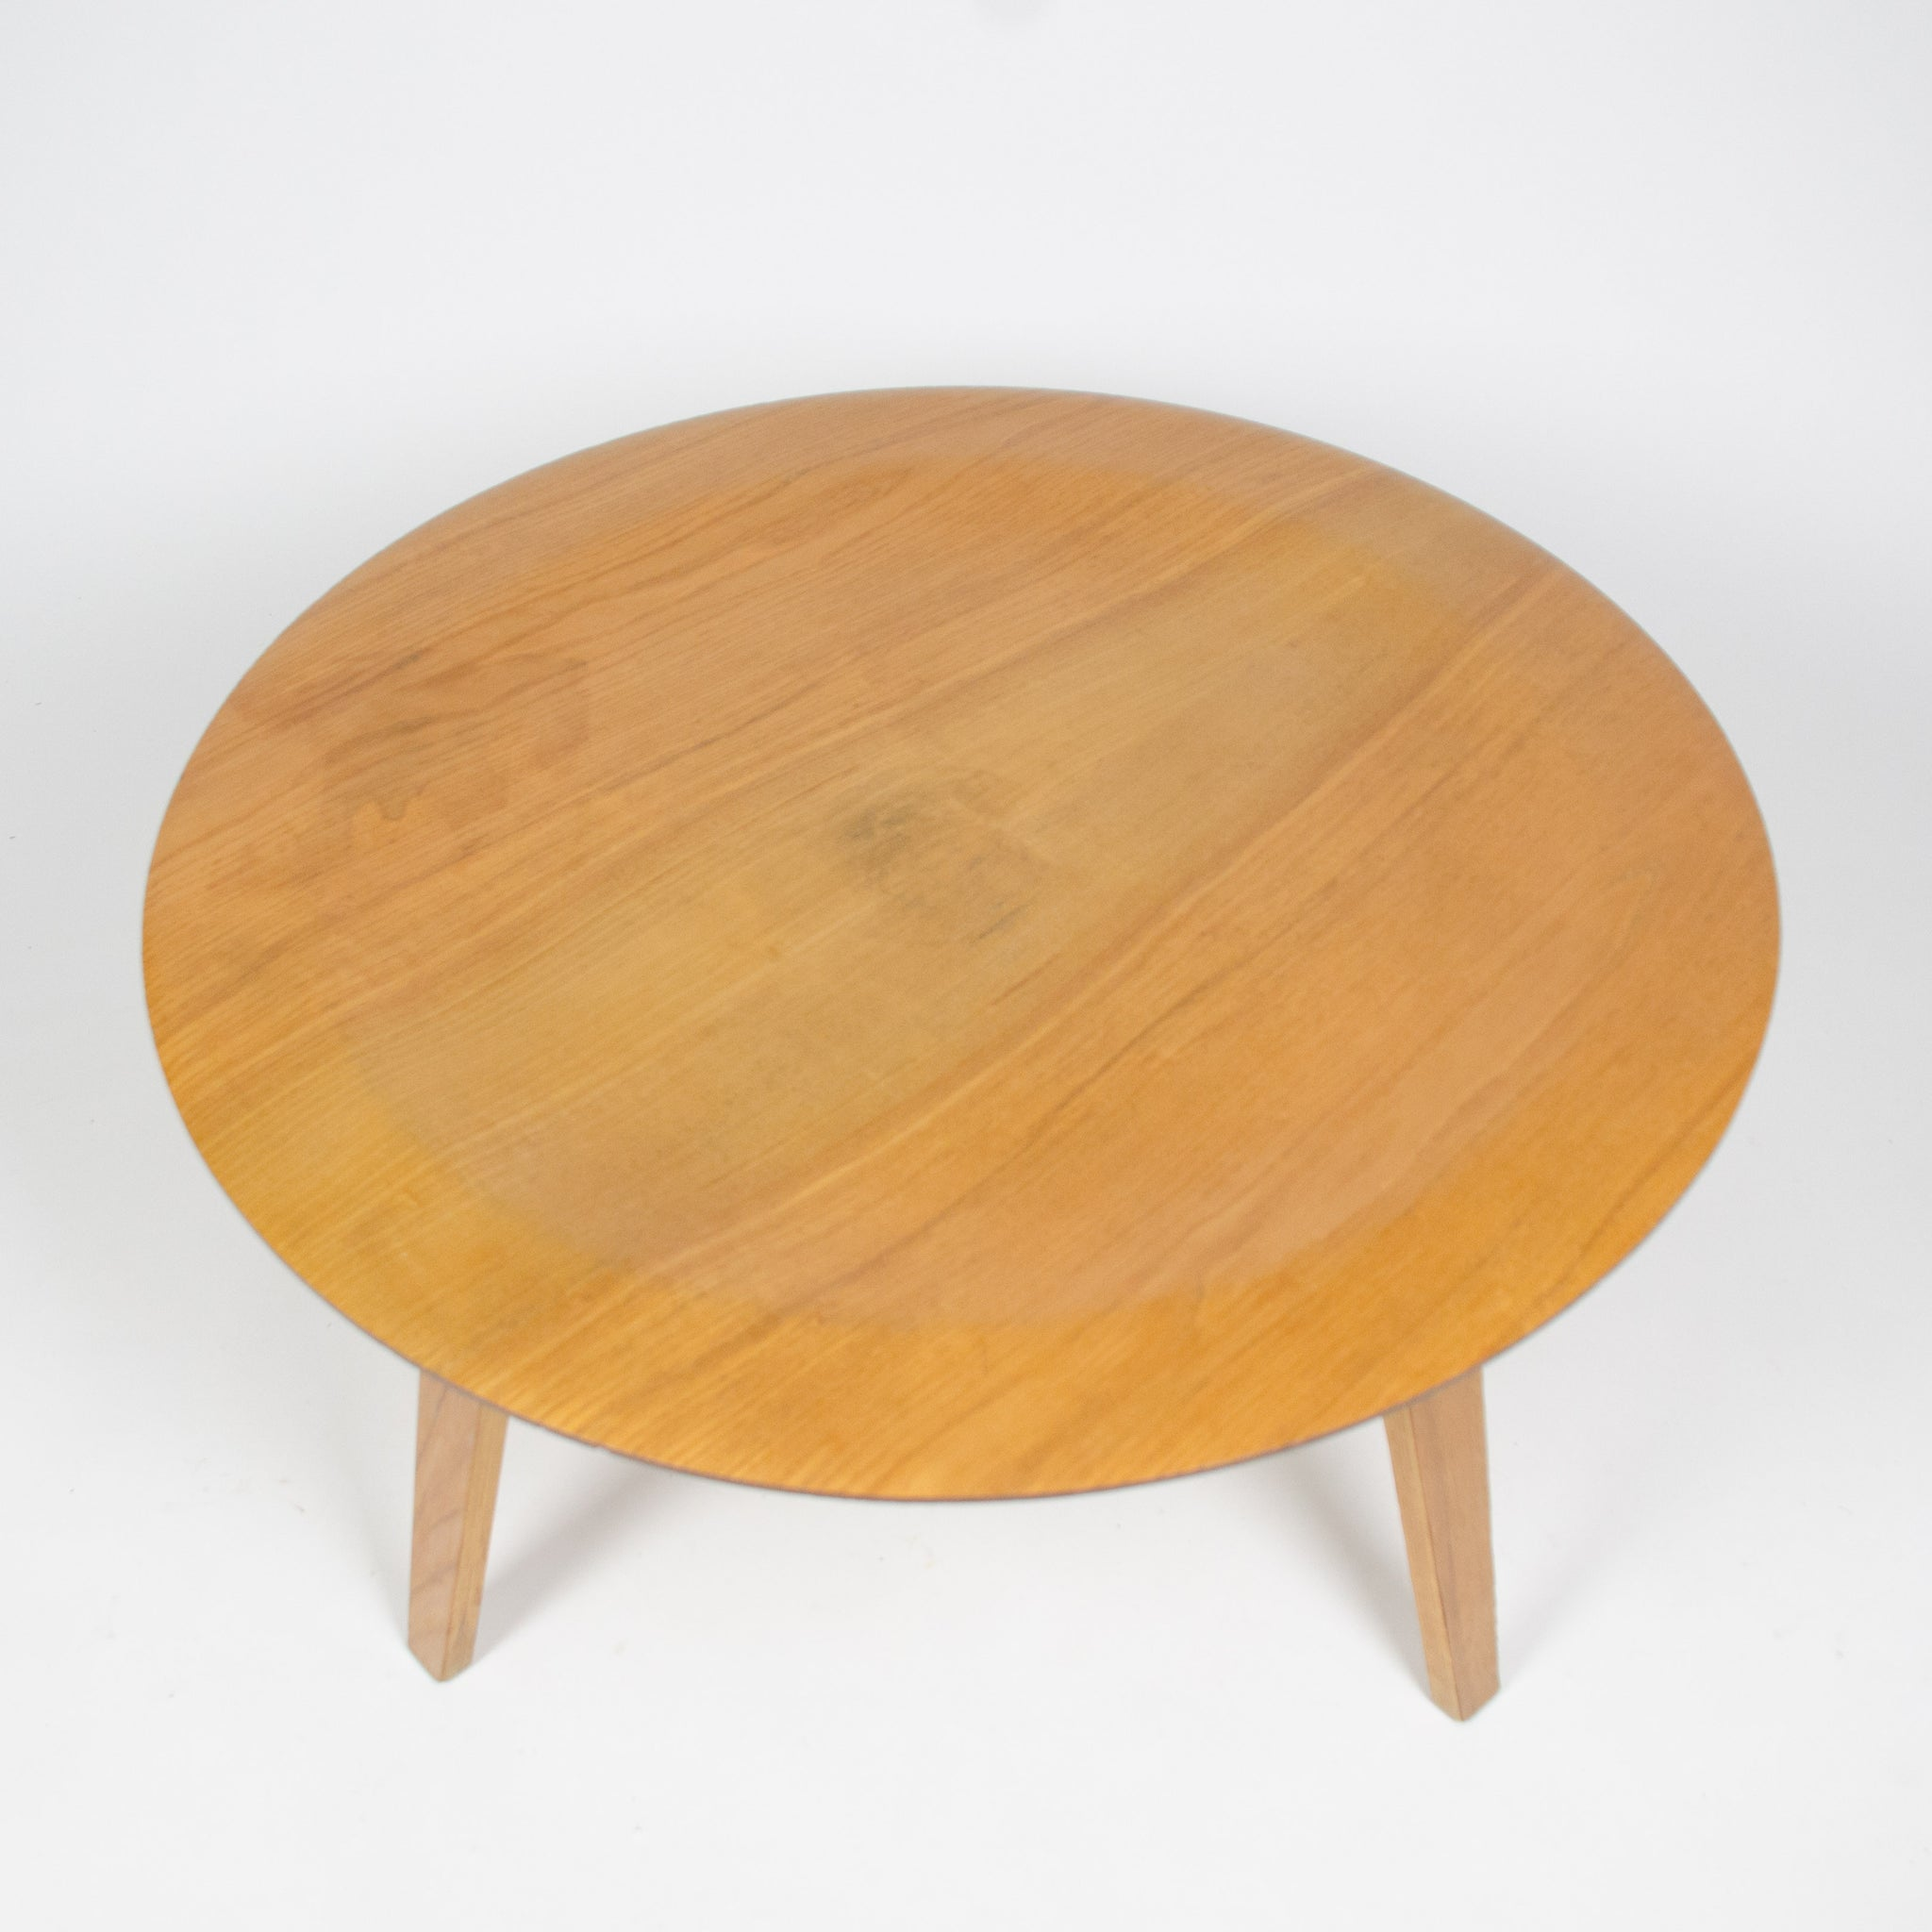 SOLD Early Eames Herman Miller 1950's CTW Coffee Table Mid Century Knoll